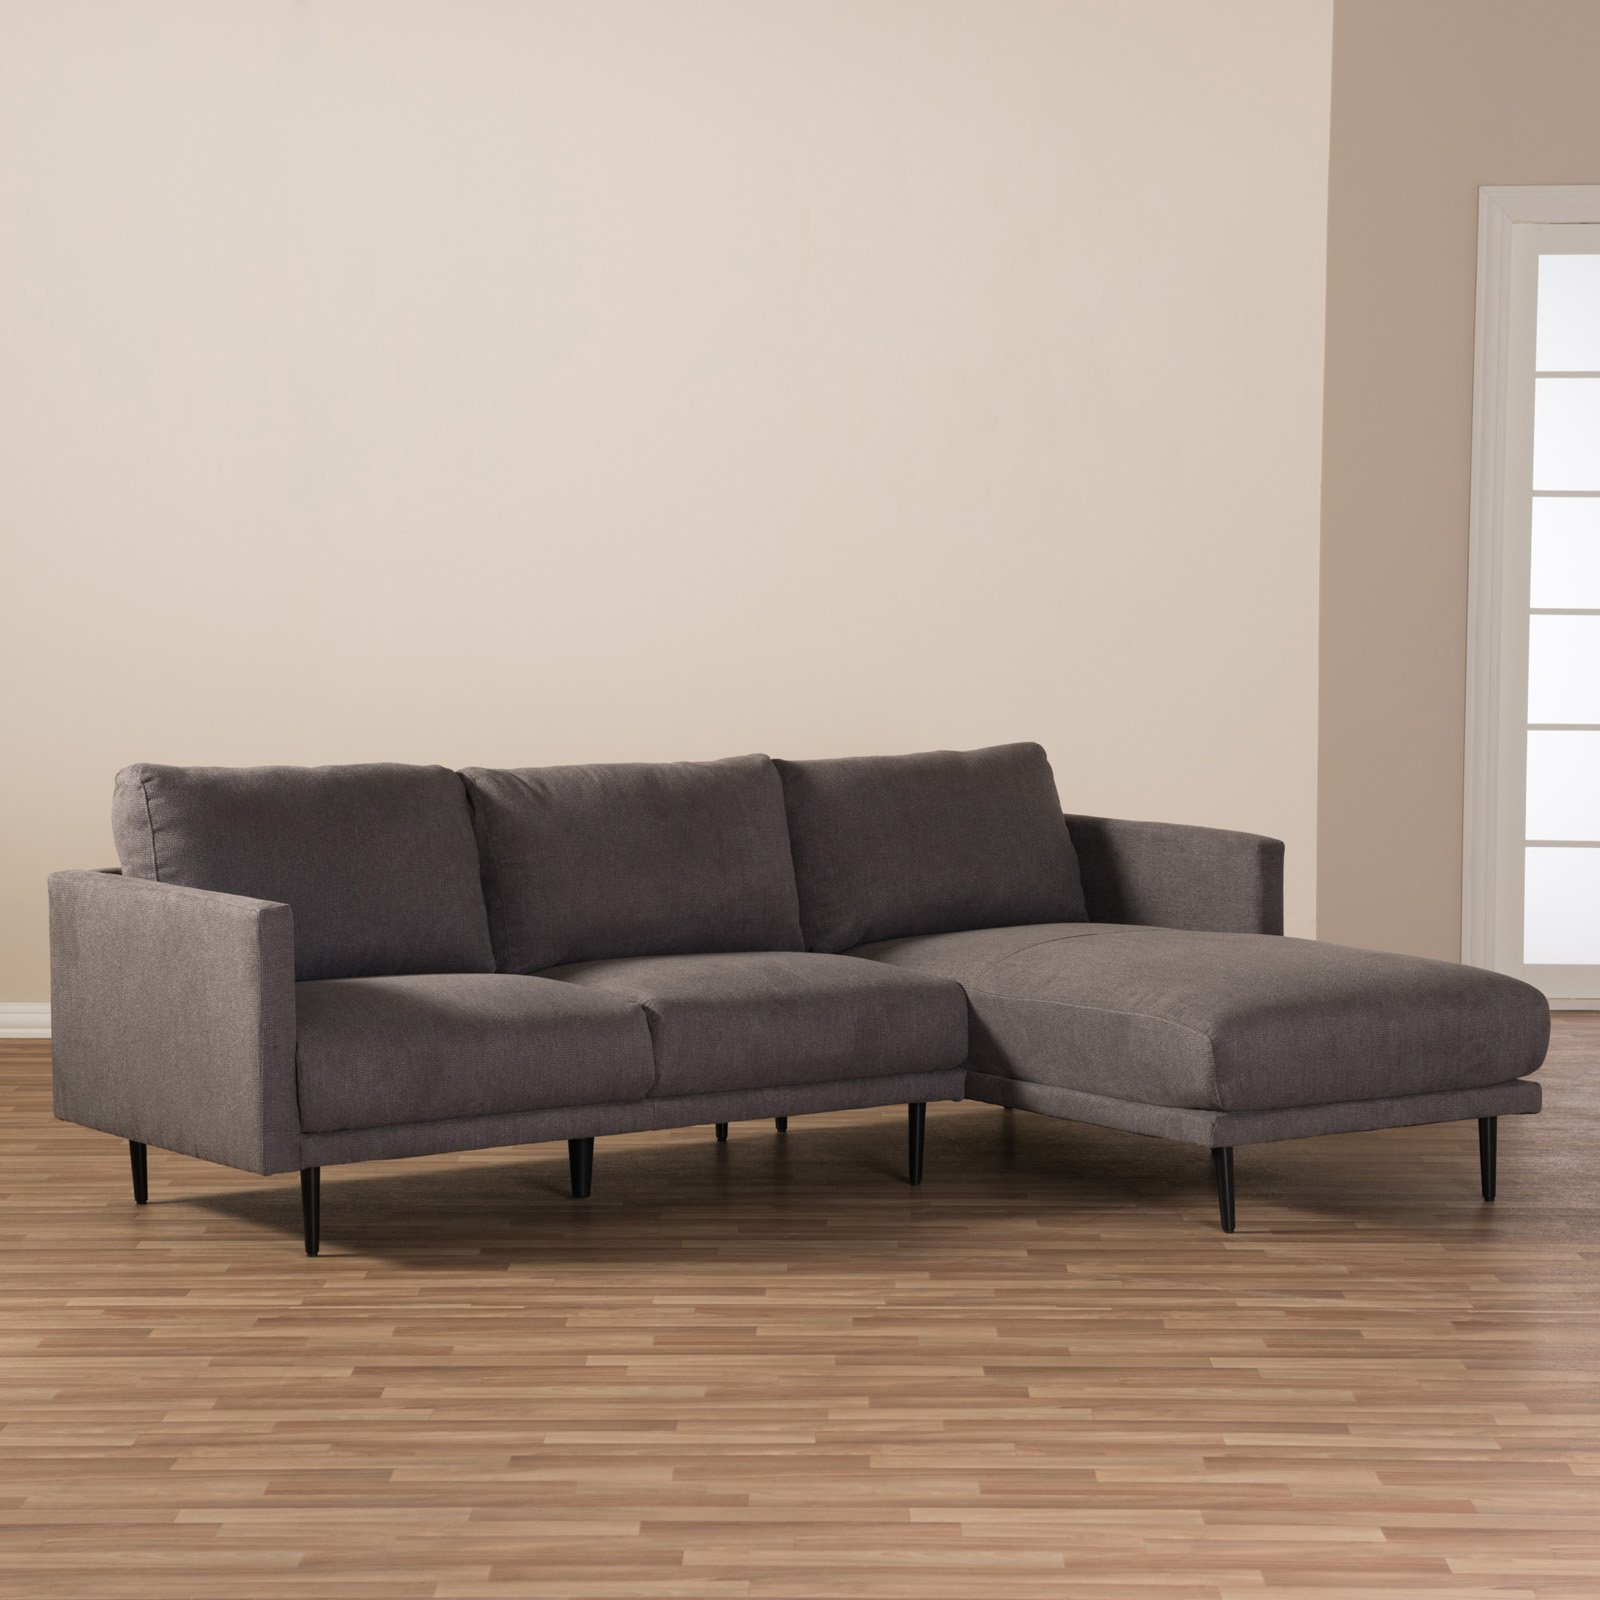 Baxton Studio Riley Retro Mid-Century Modern Grey Fabric Upholstered Right Facing Chaise Sectional Sofa